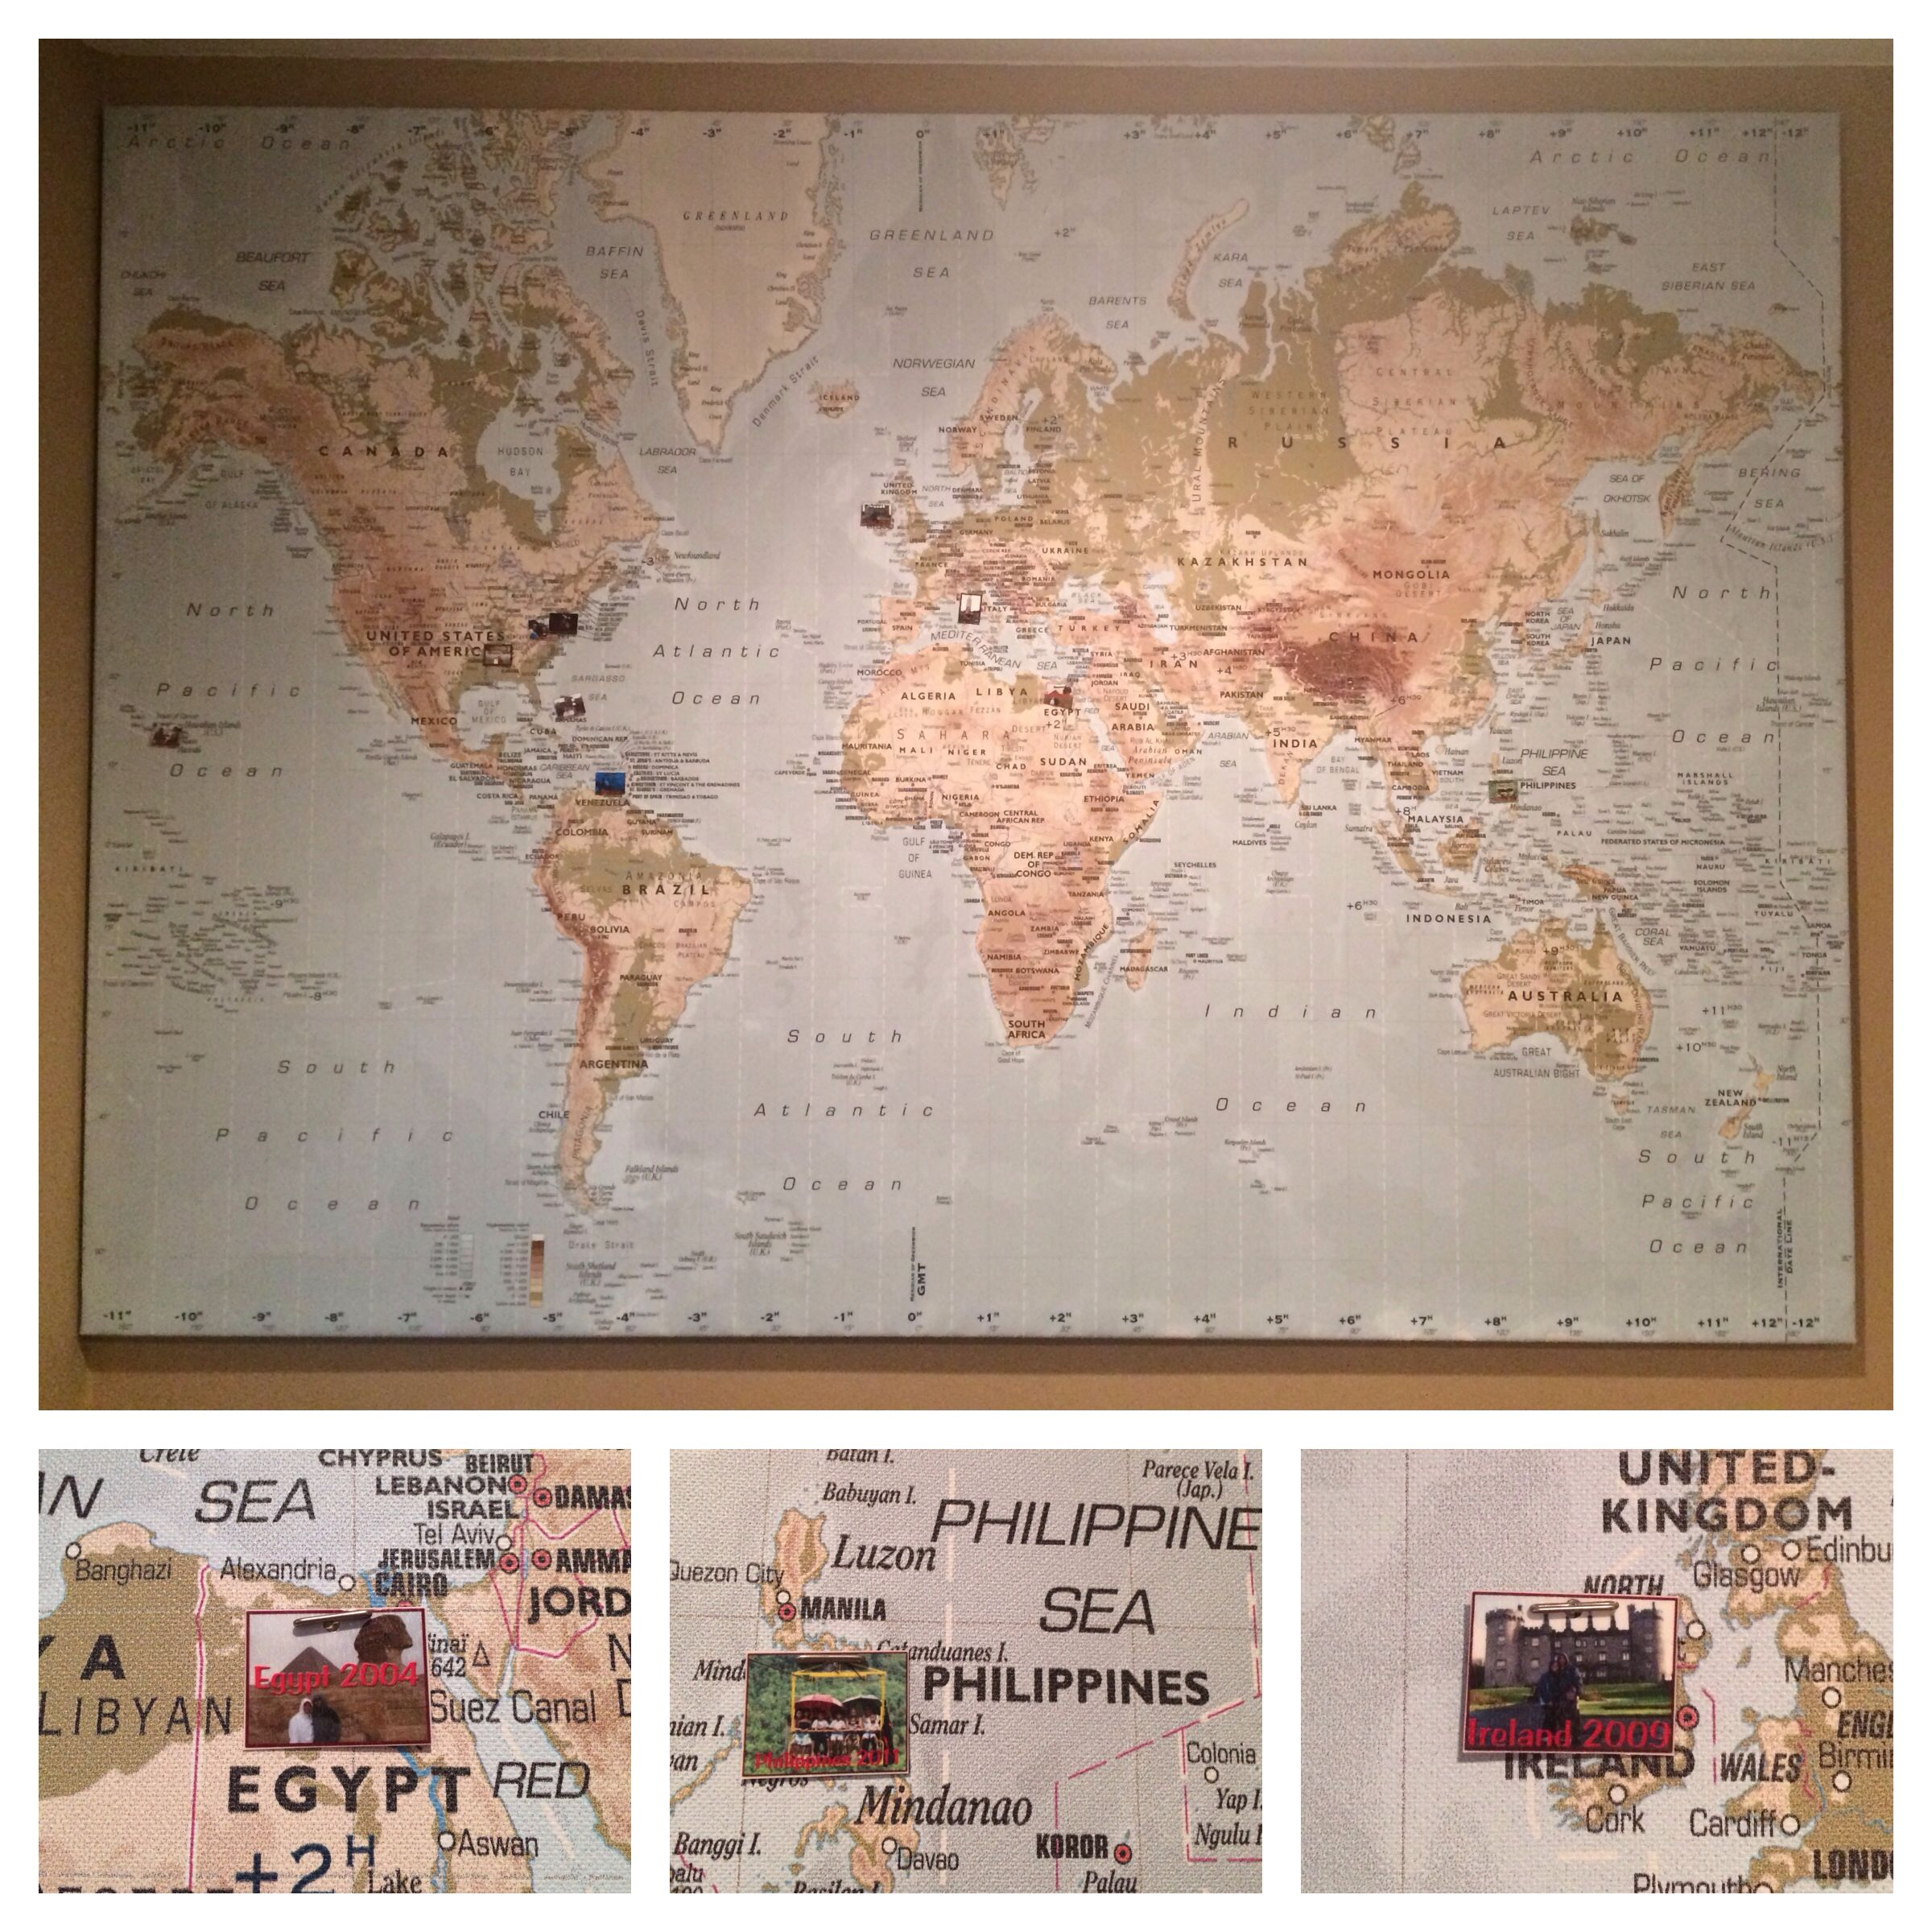 Bought a large world map at IKEA Pinned pictures of the places we